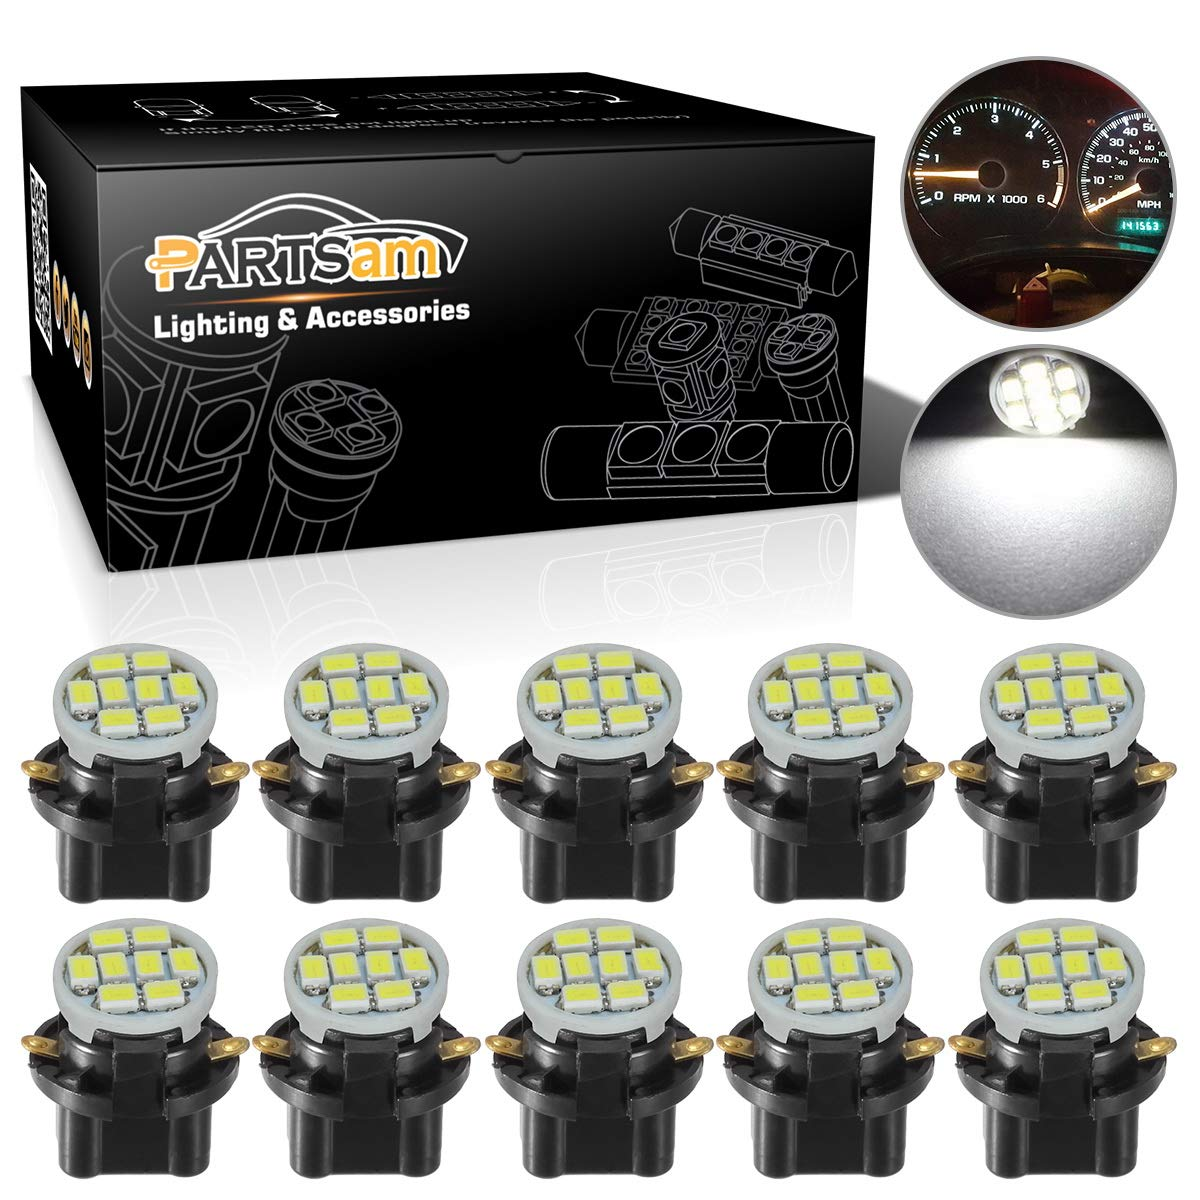 Partsam T10 194 LED Light bulb 168 LED Bulbs Bright Instrument Panel Gauge Cluster Dashboard LED Light Bulbs Set 10 T10 LED Bulbs with 10 Twist Lock Socket 5/8 Inch 16mm - White 10Pcak